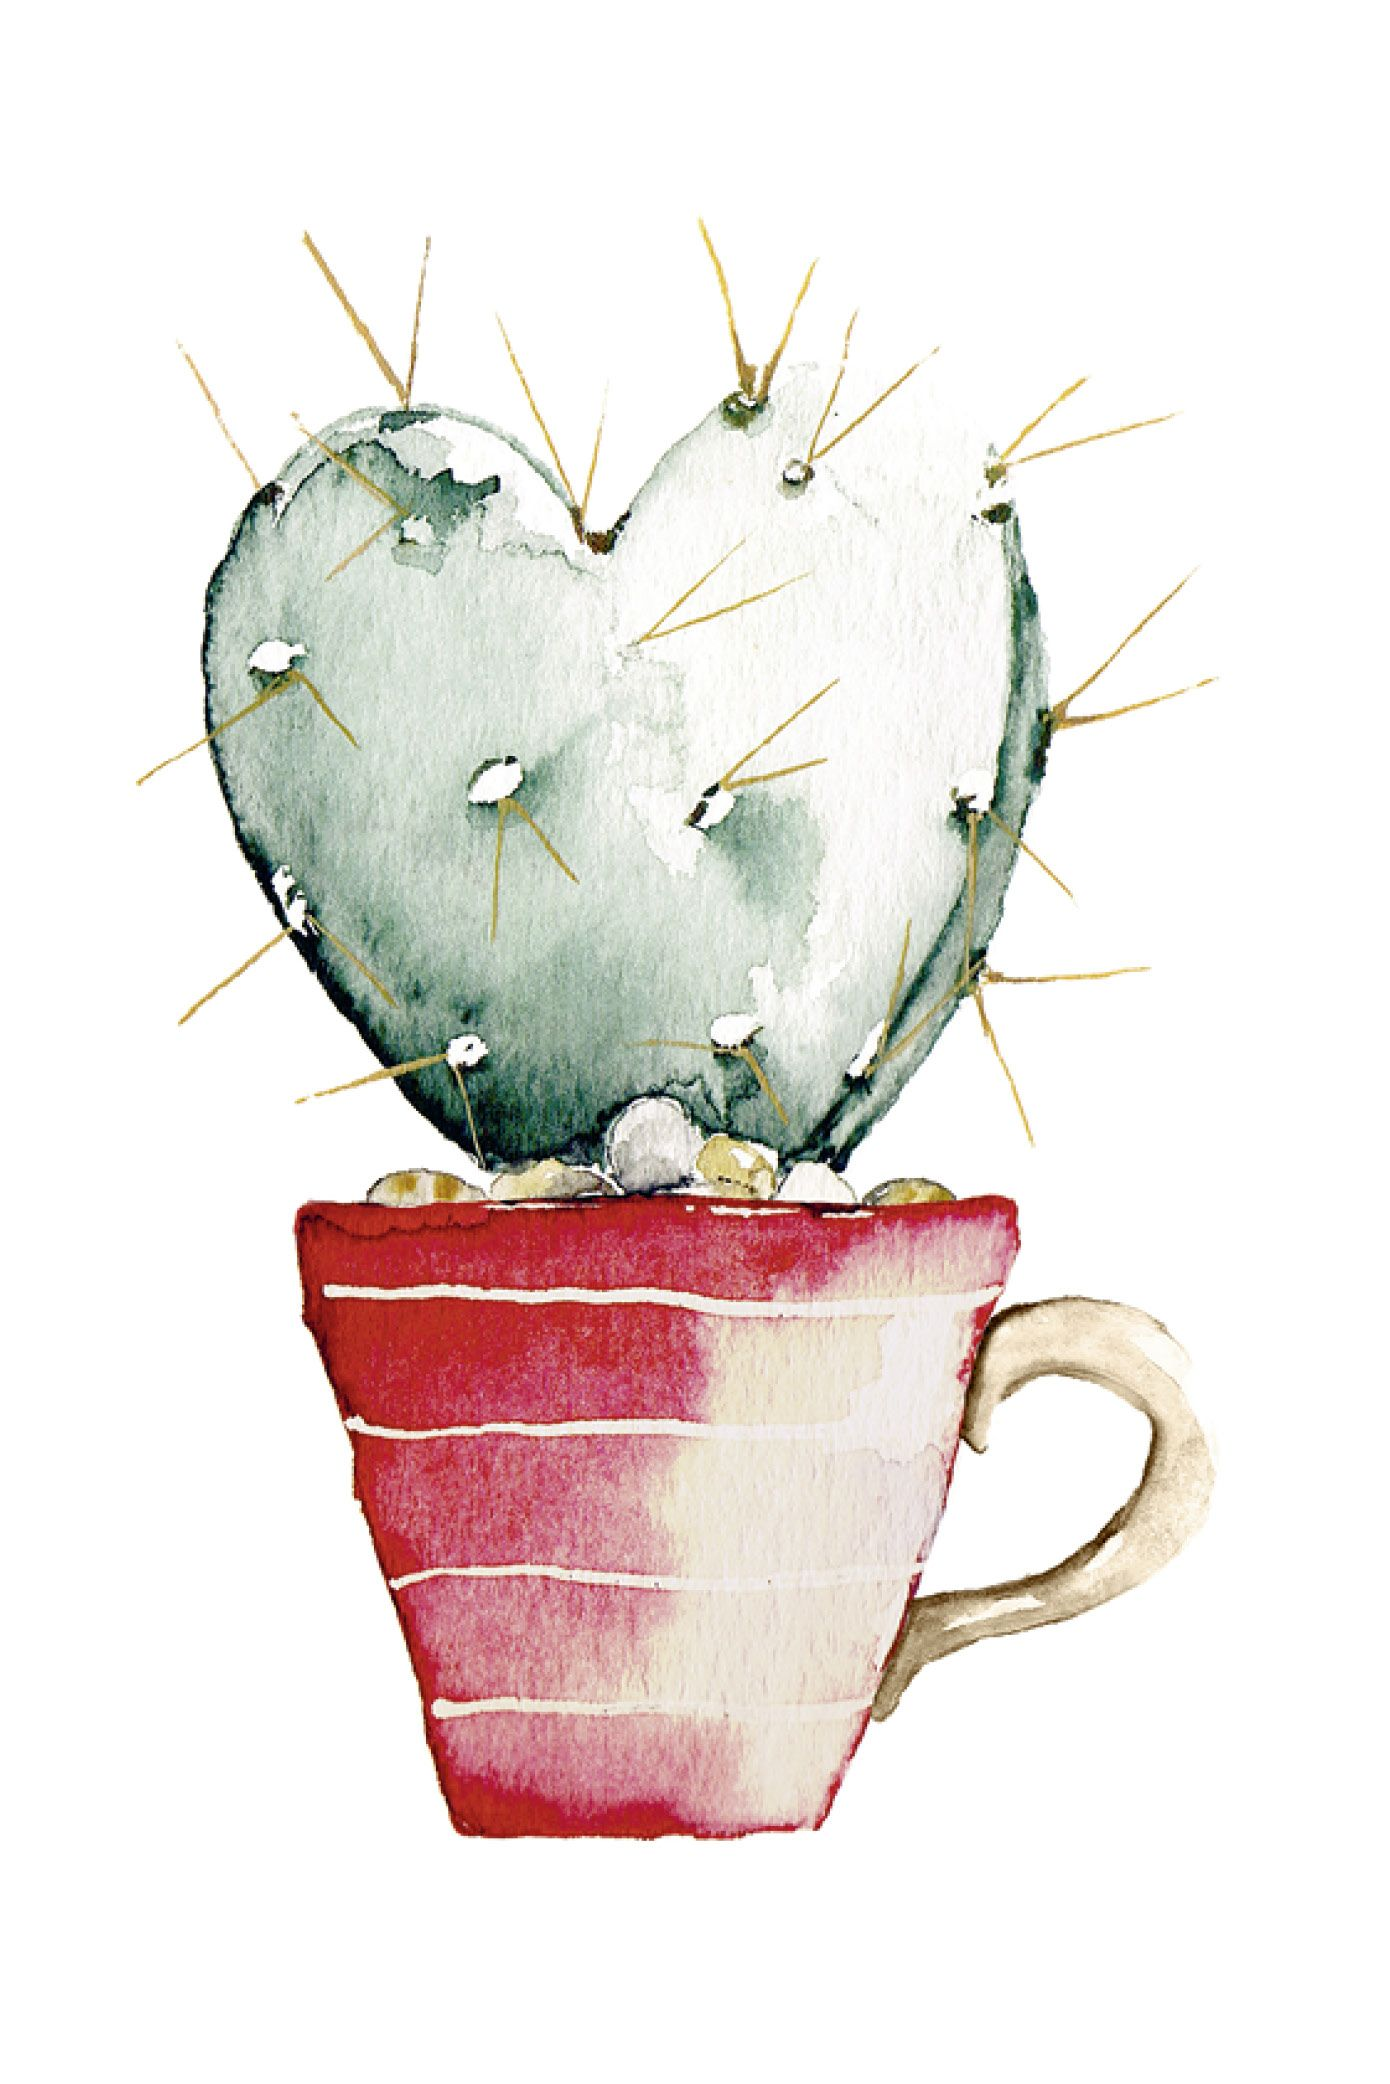 Cactus heart – Watercolor Postcard #valentinday #valentin #love #heart #cactus #cactusheart #herz #kaktus